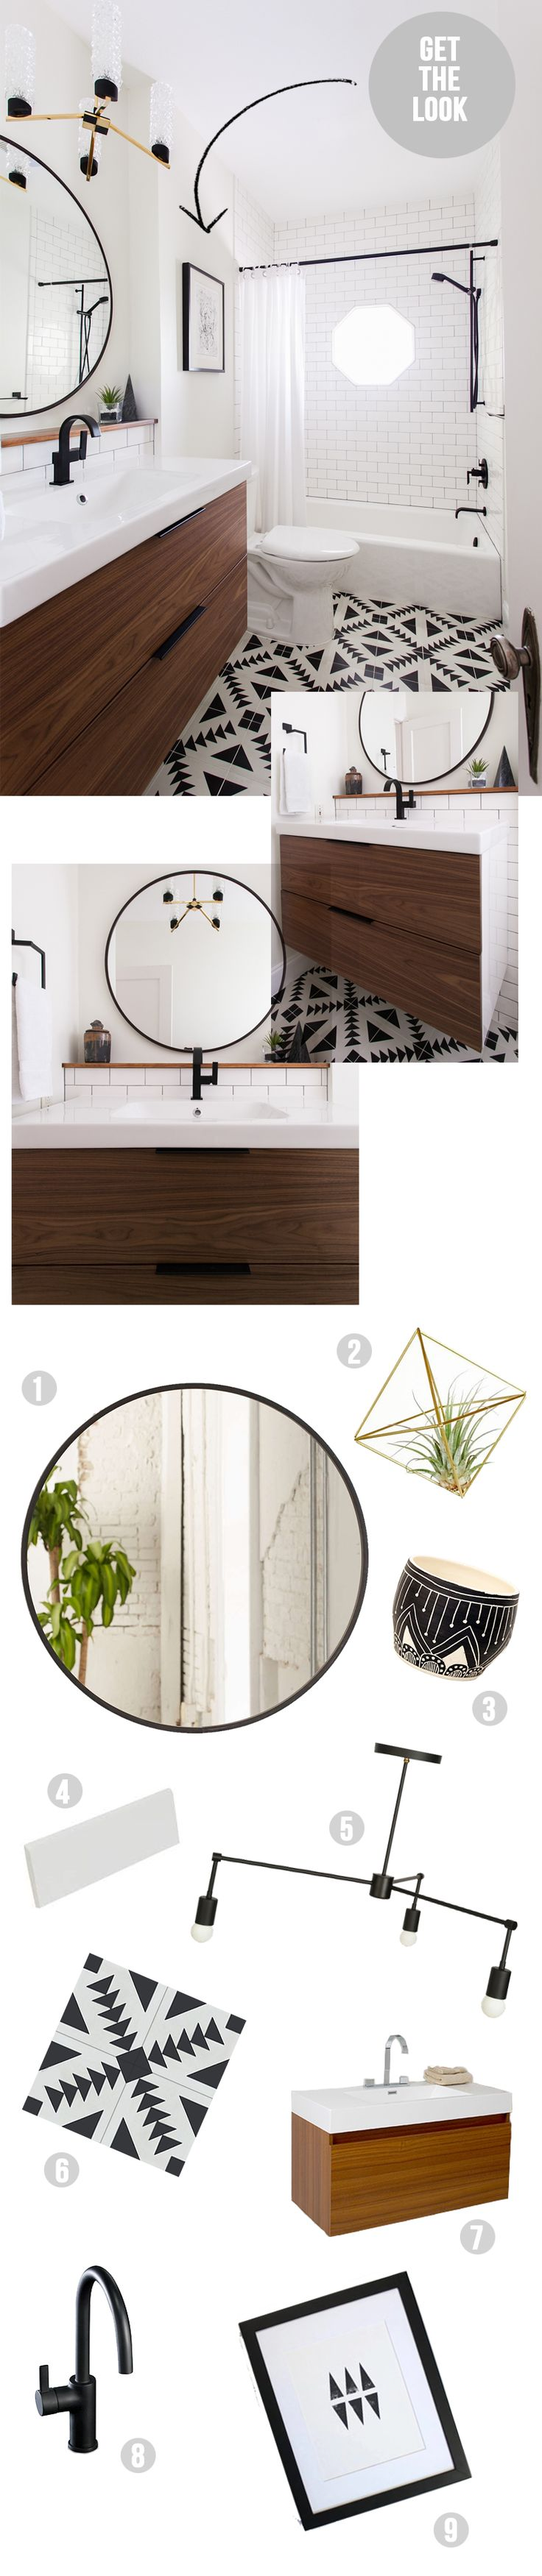 Get The Look - Bathroom